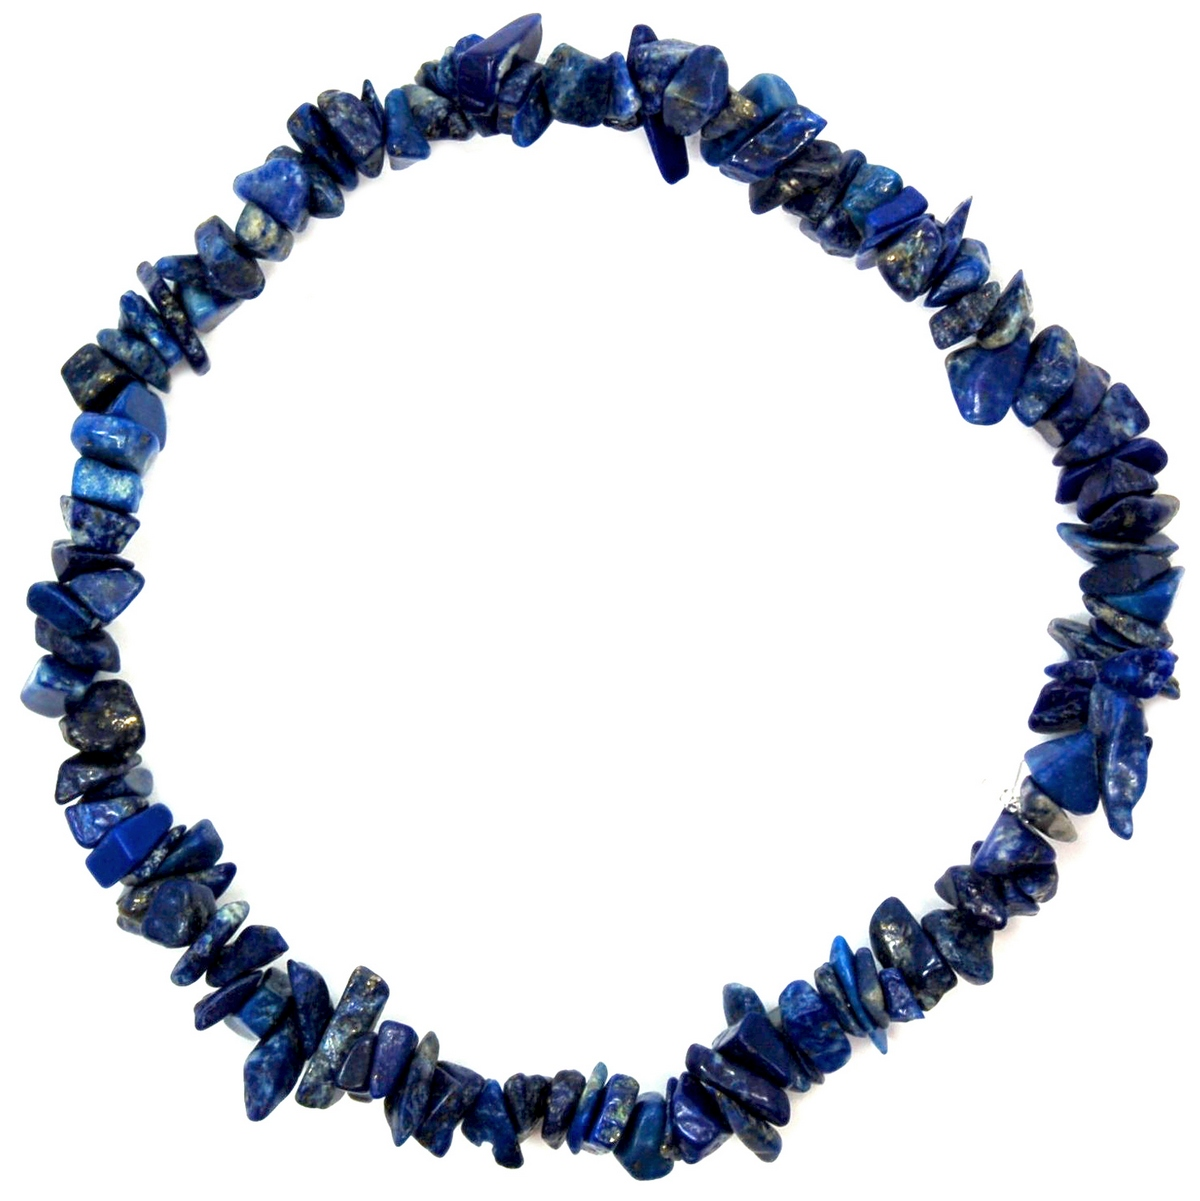 Bracelets - Lapis w/Malachite Single Strand Bracelet (India)